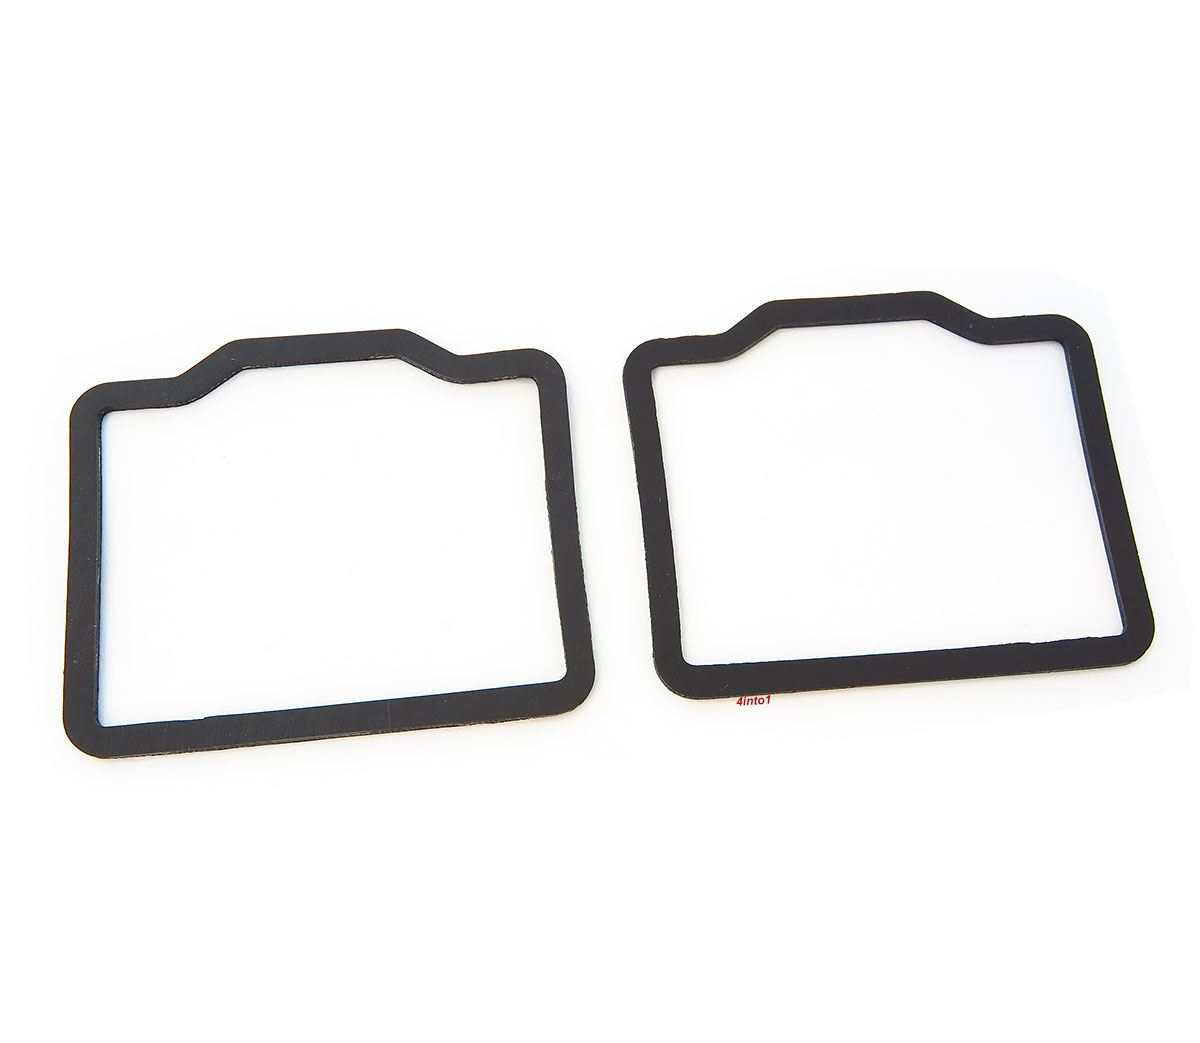 No Swell Float Bowl Gasket 2 Pack Honda Cb Cl160 Sl175